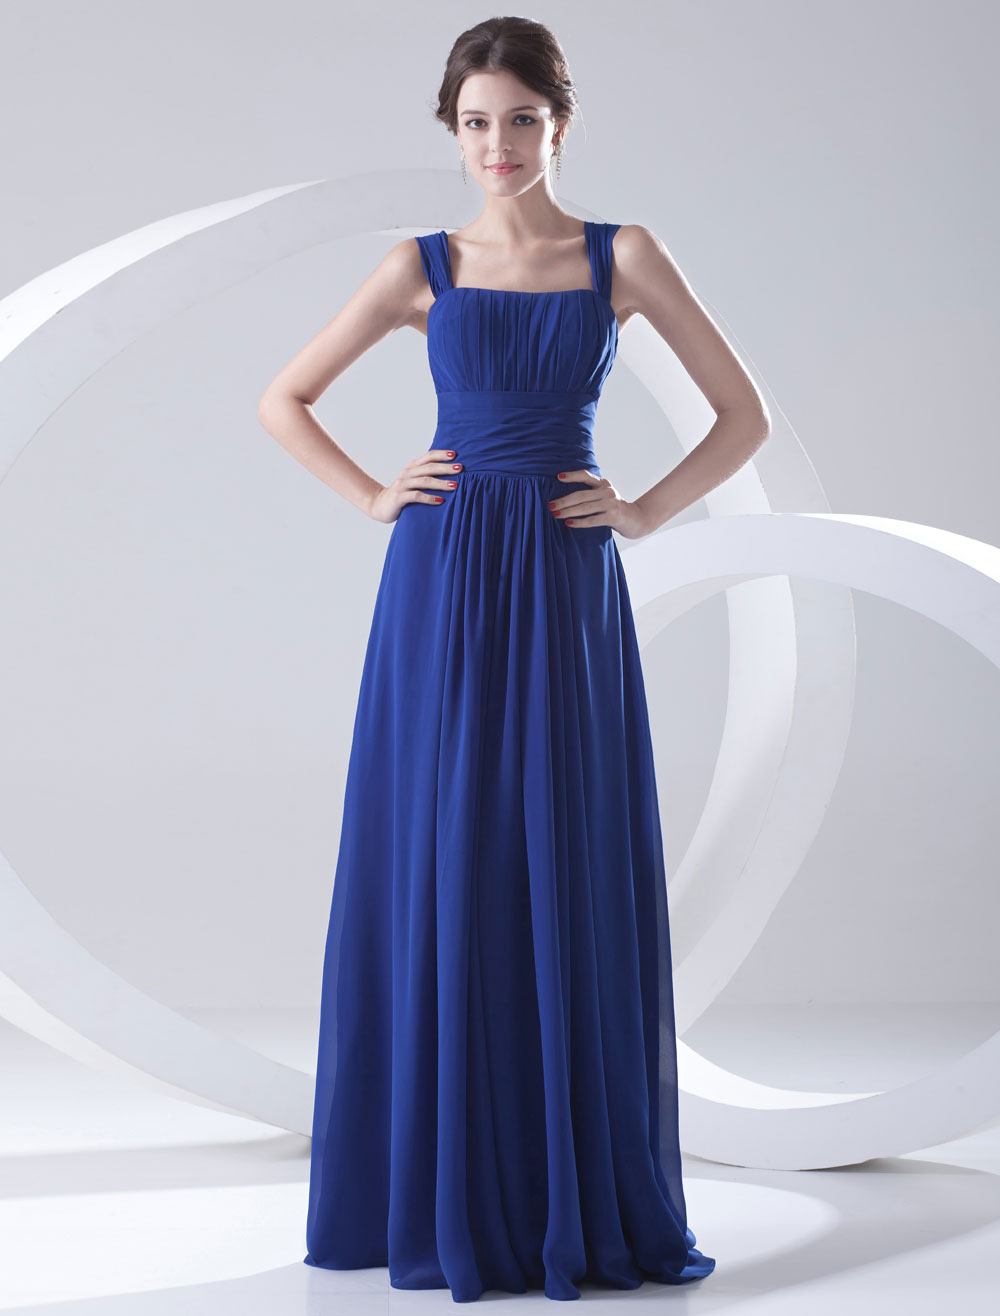 Blue Bridesmaid Dress Floor-Length Straps Sheath Ruched Chiffon Dress